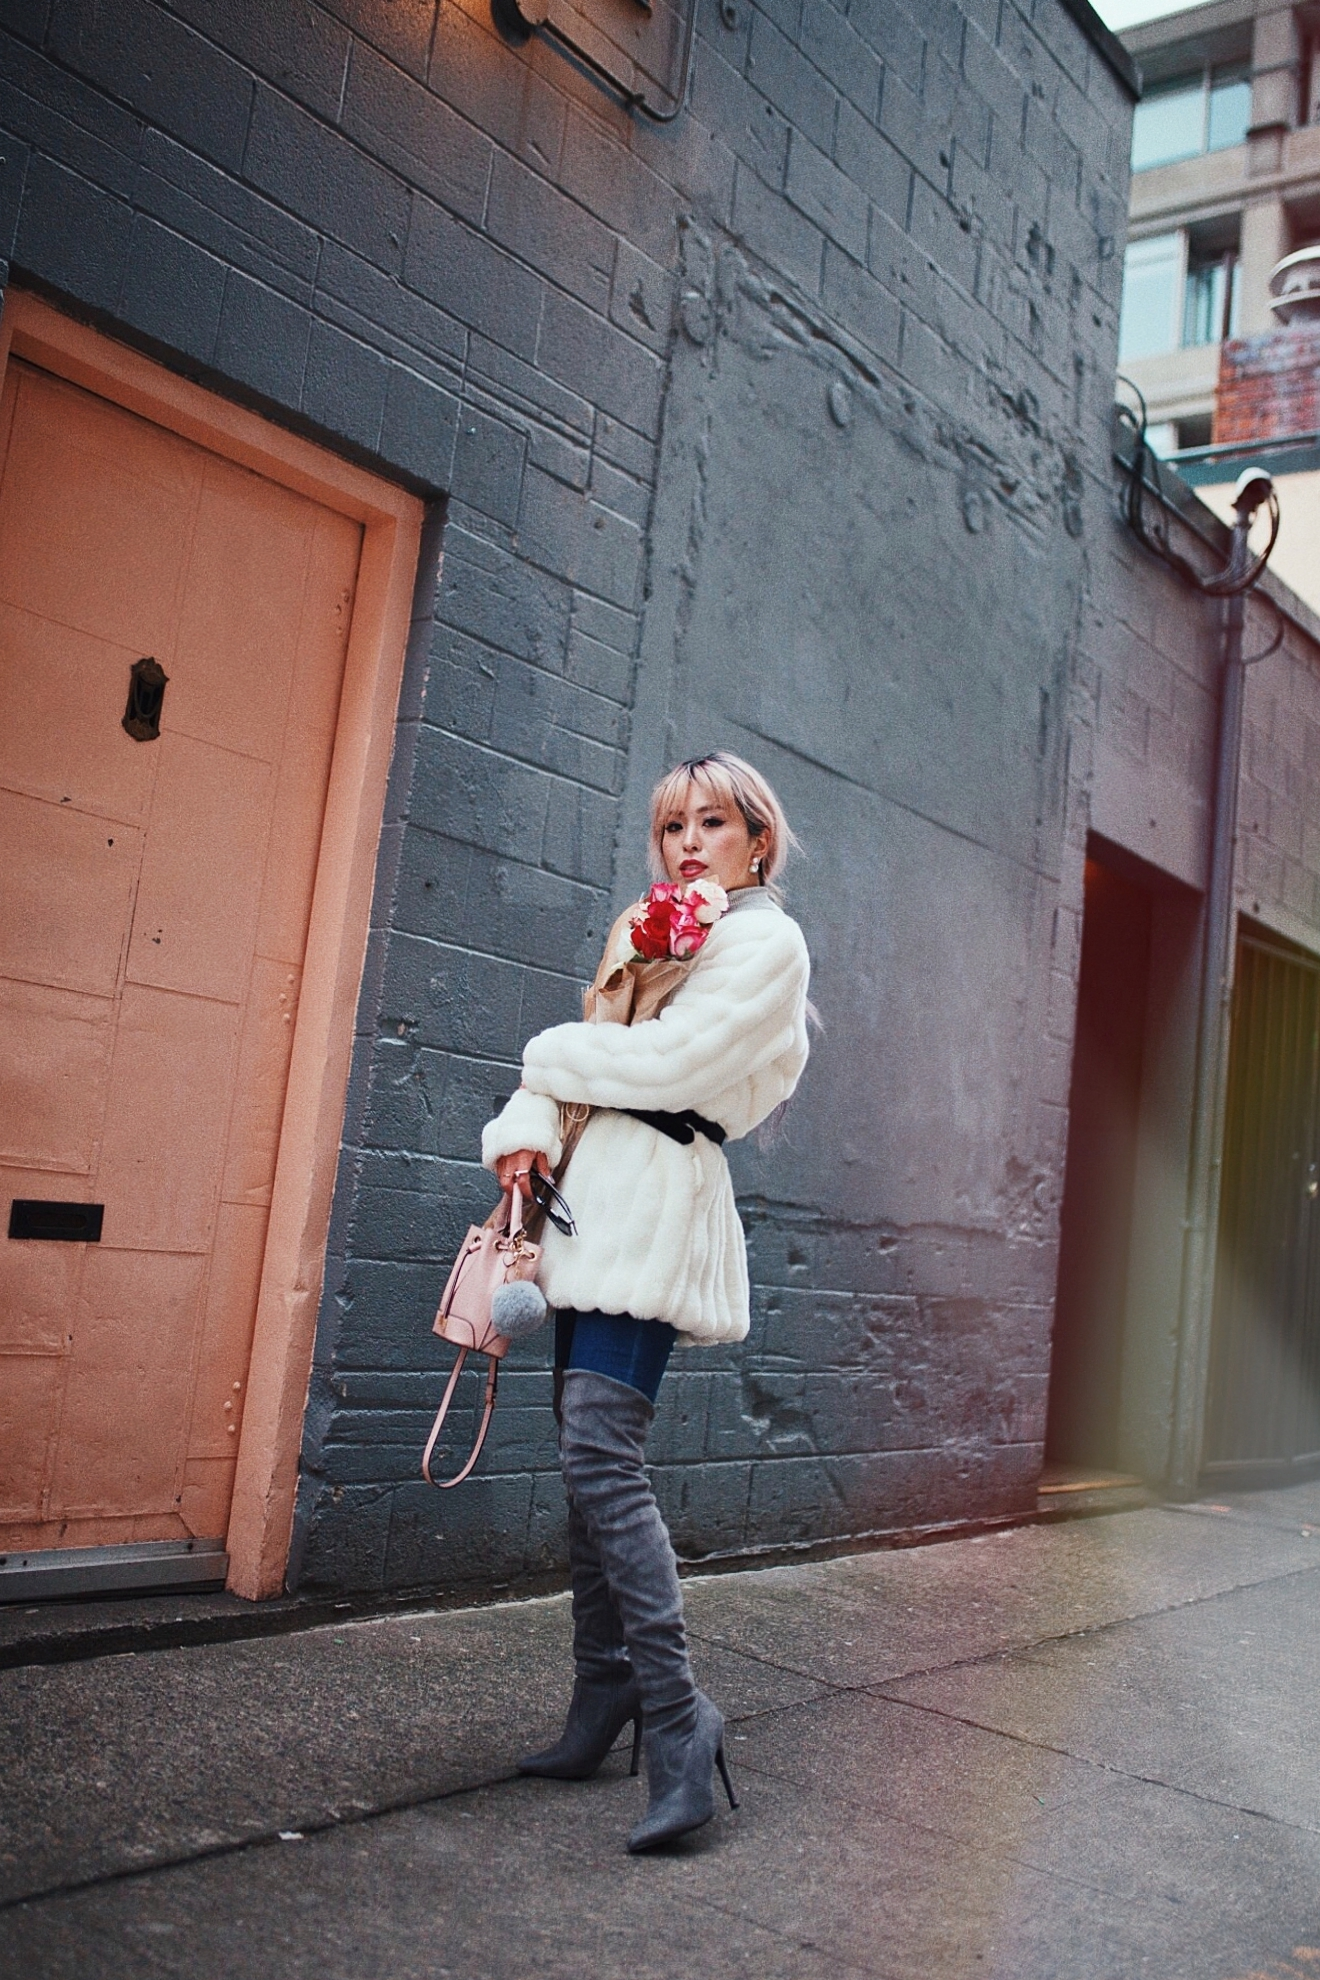 H&M Gray Turtleneck Sweater-ASOS high waisted skinny jean-EGO Grey Over the Knee Boots-While Faux Fur Coat-Forever 21 Pearl Belt & Pink Mini Basket Bag-Chanel Ribbon Hair-Valentine's Day-Pink Hair-Japanese-Seattle Style Fashion Blogger-AikA's Love Closet